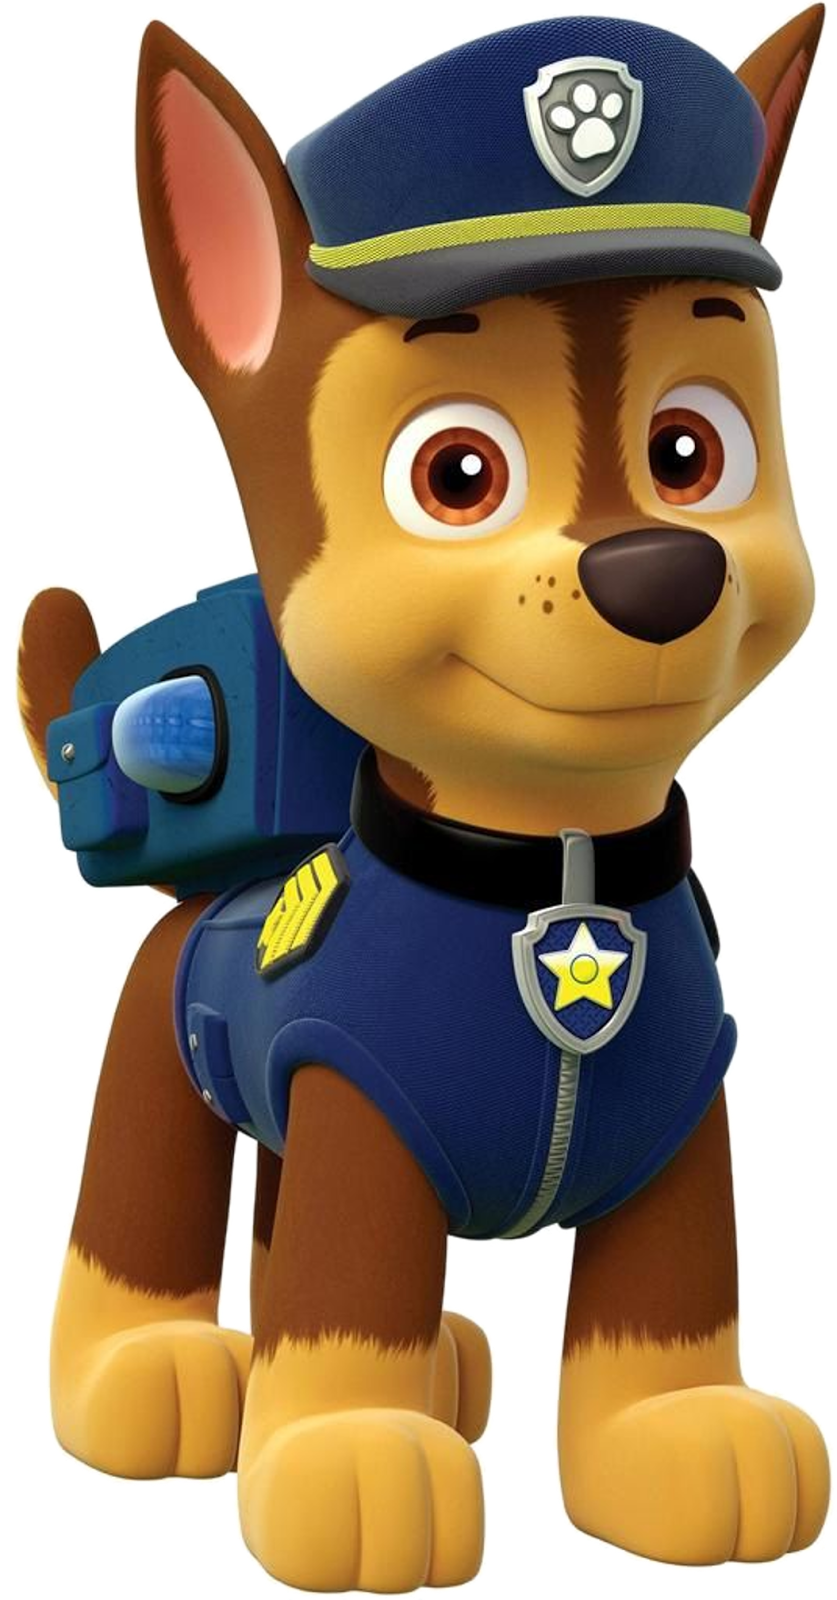 Paw patrol png clipart. Photos transparentpng